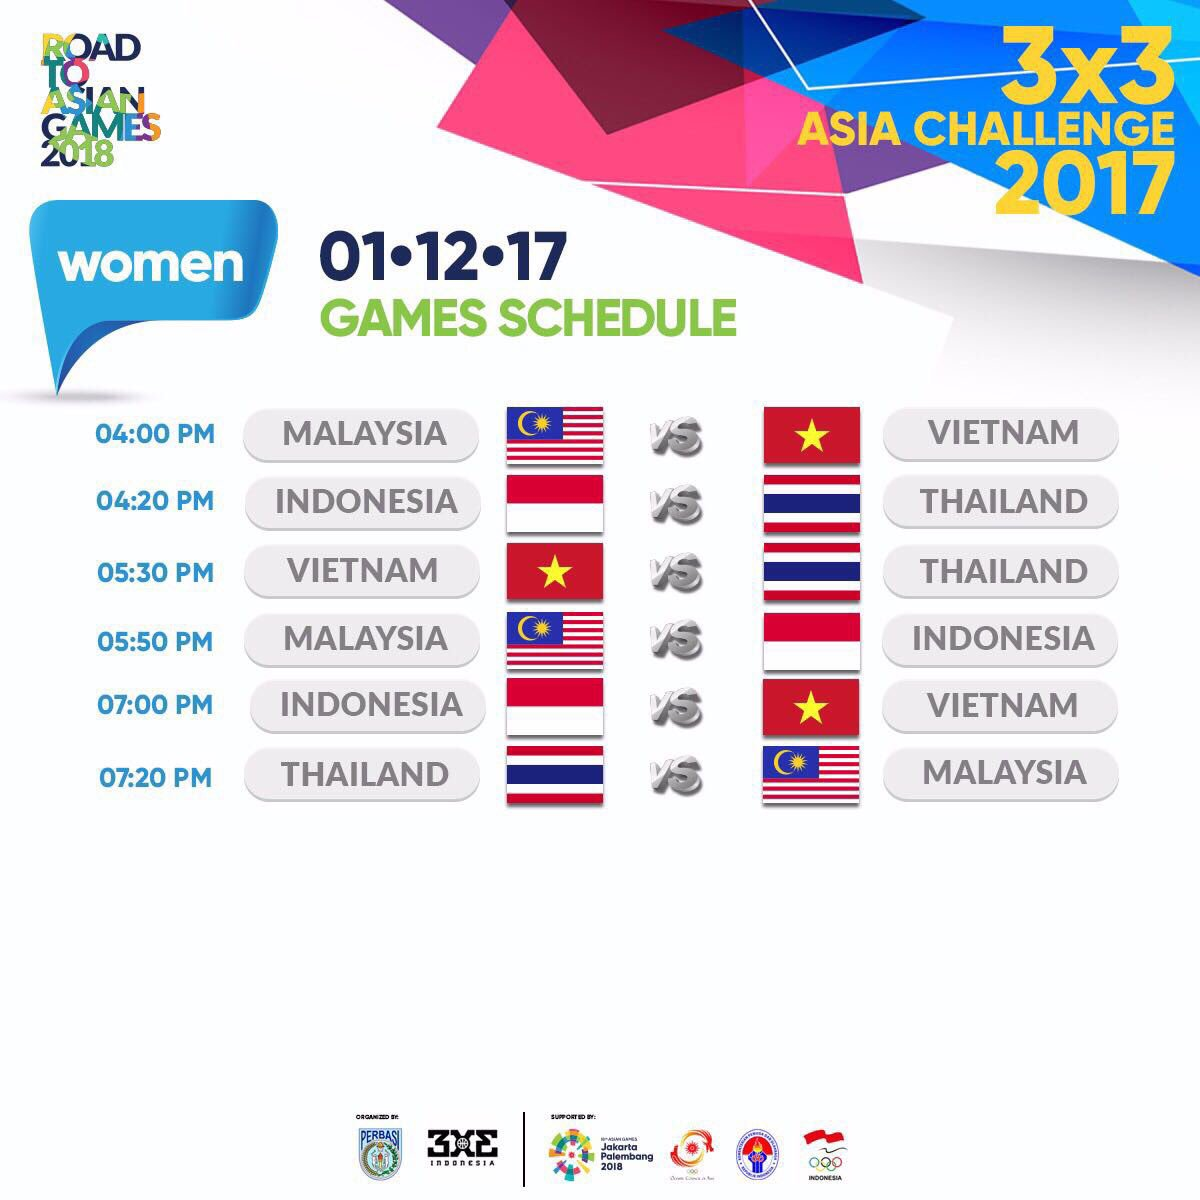 DP7Z QSVoAIADVP - Asian Games 2018 Schedule